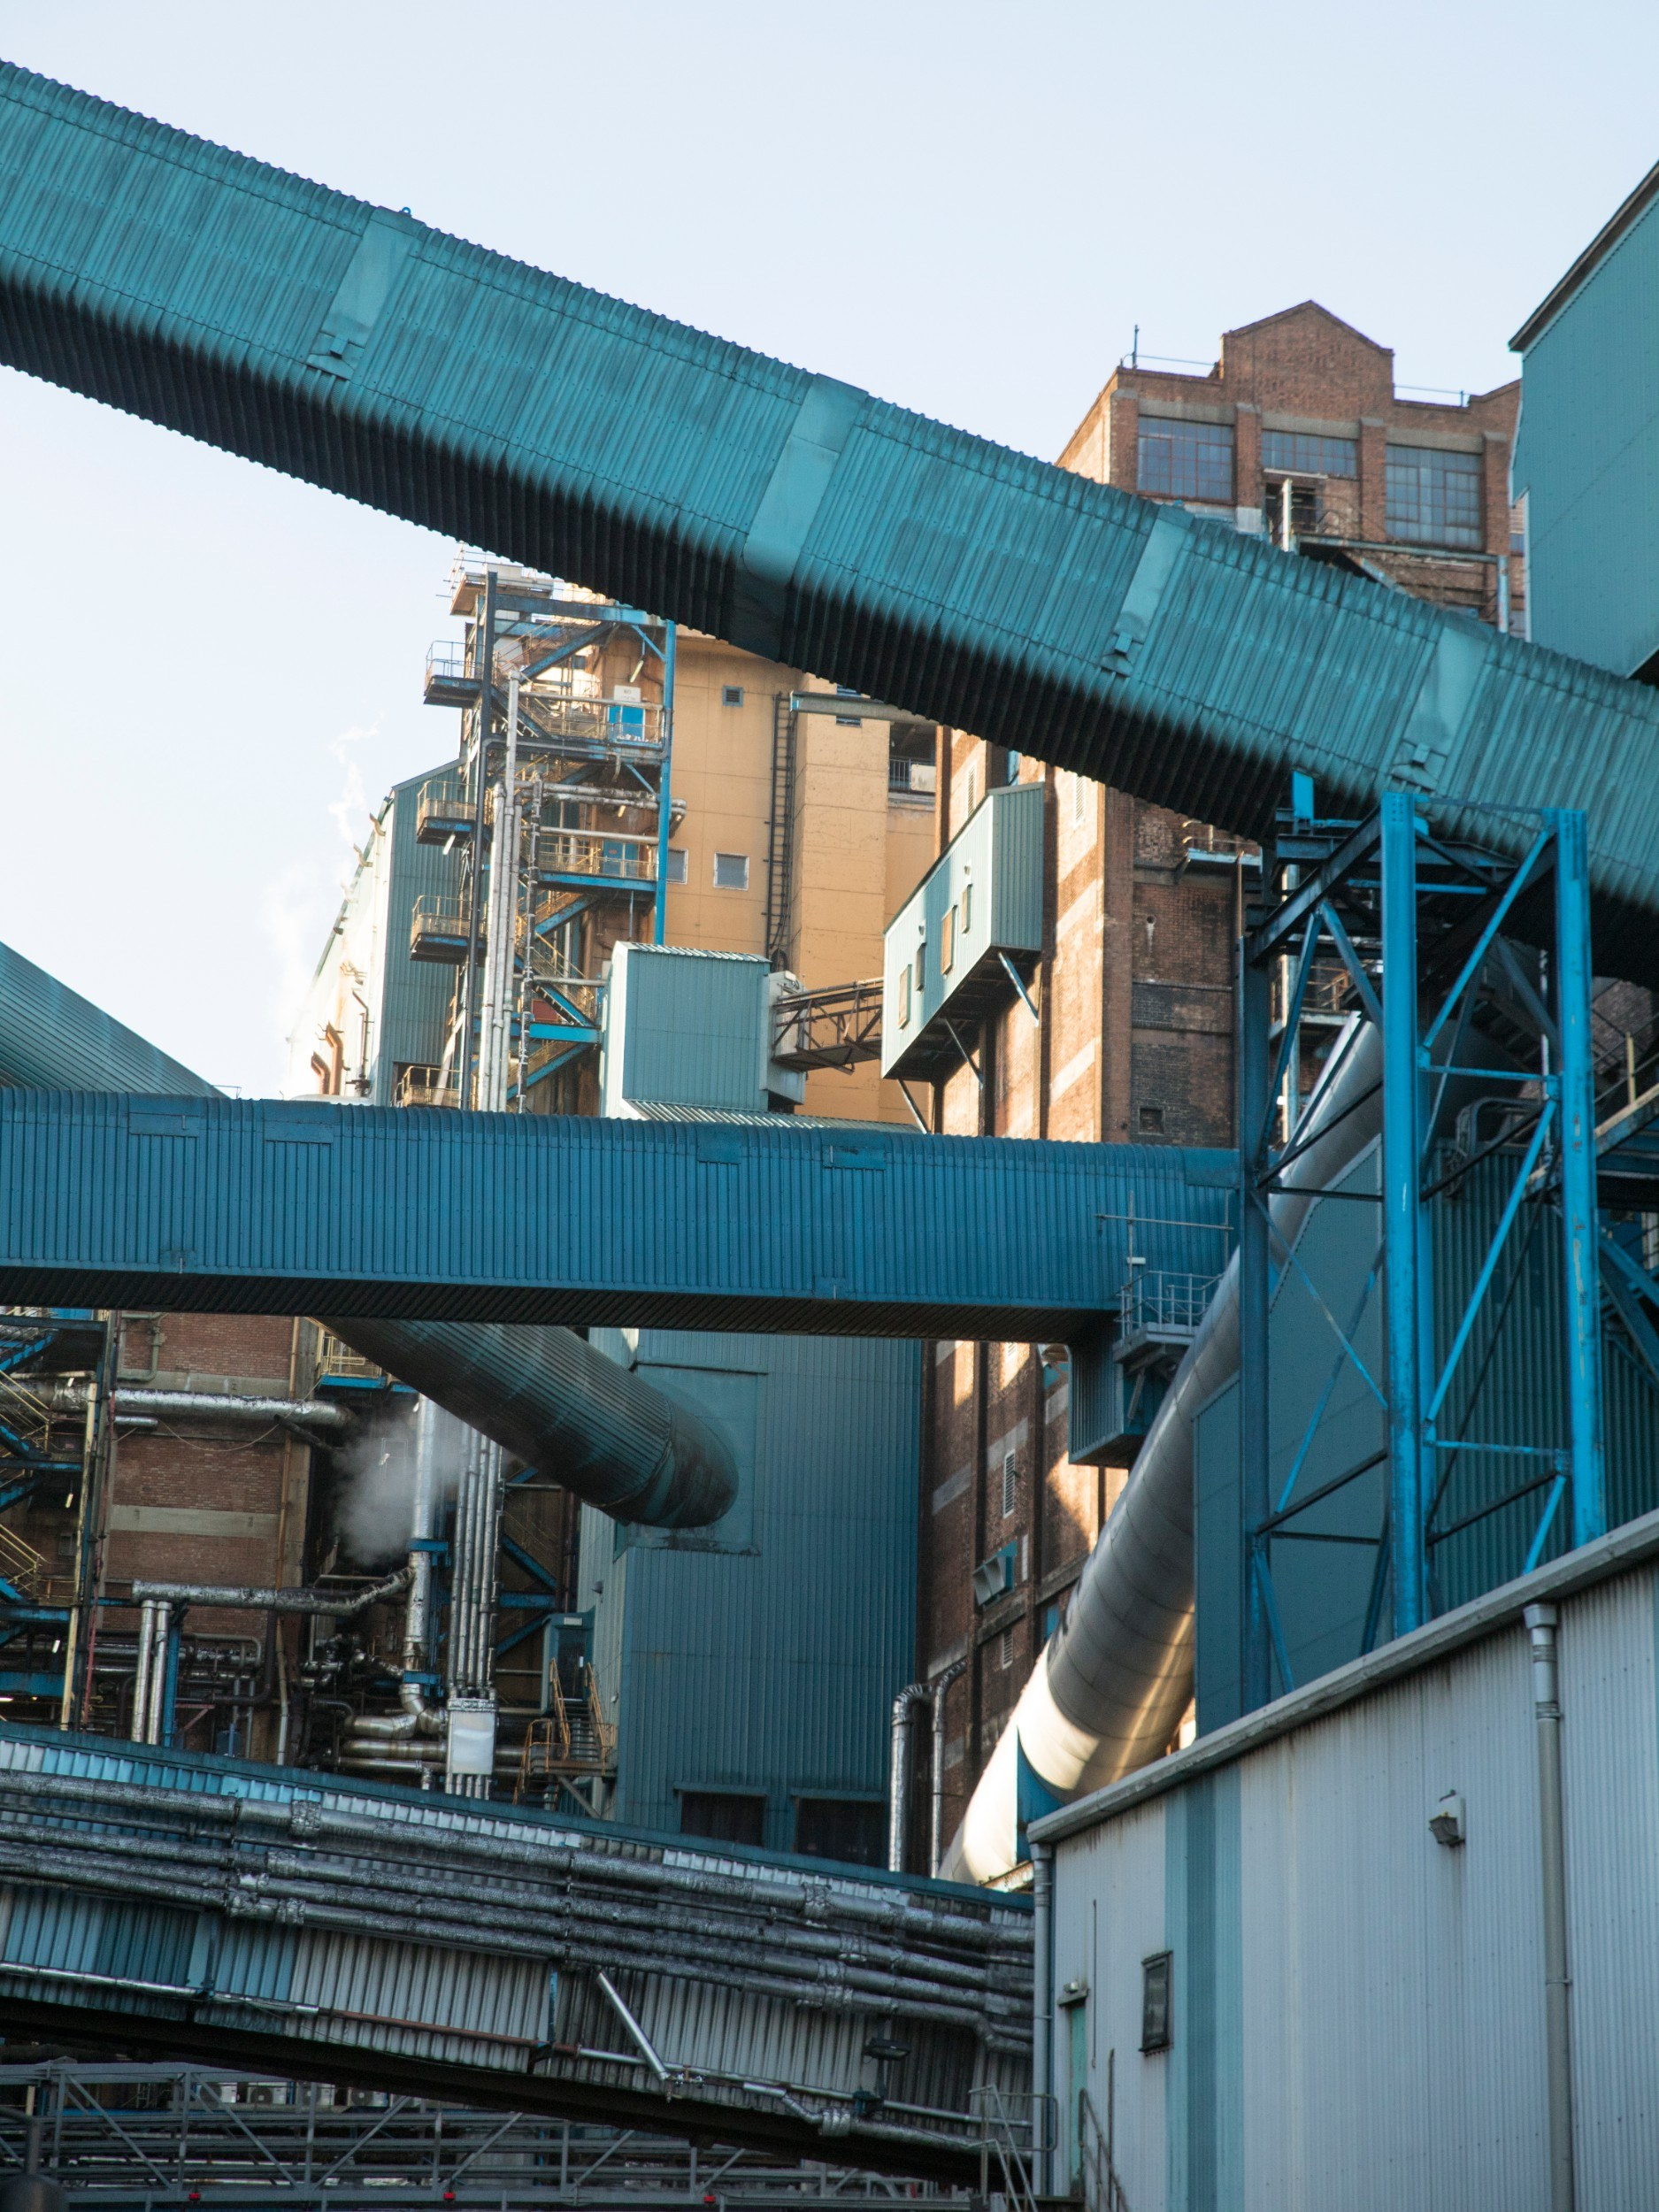 Factory buildings from the outside